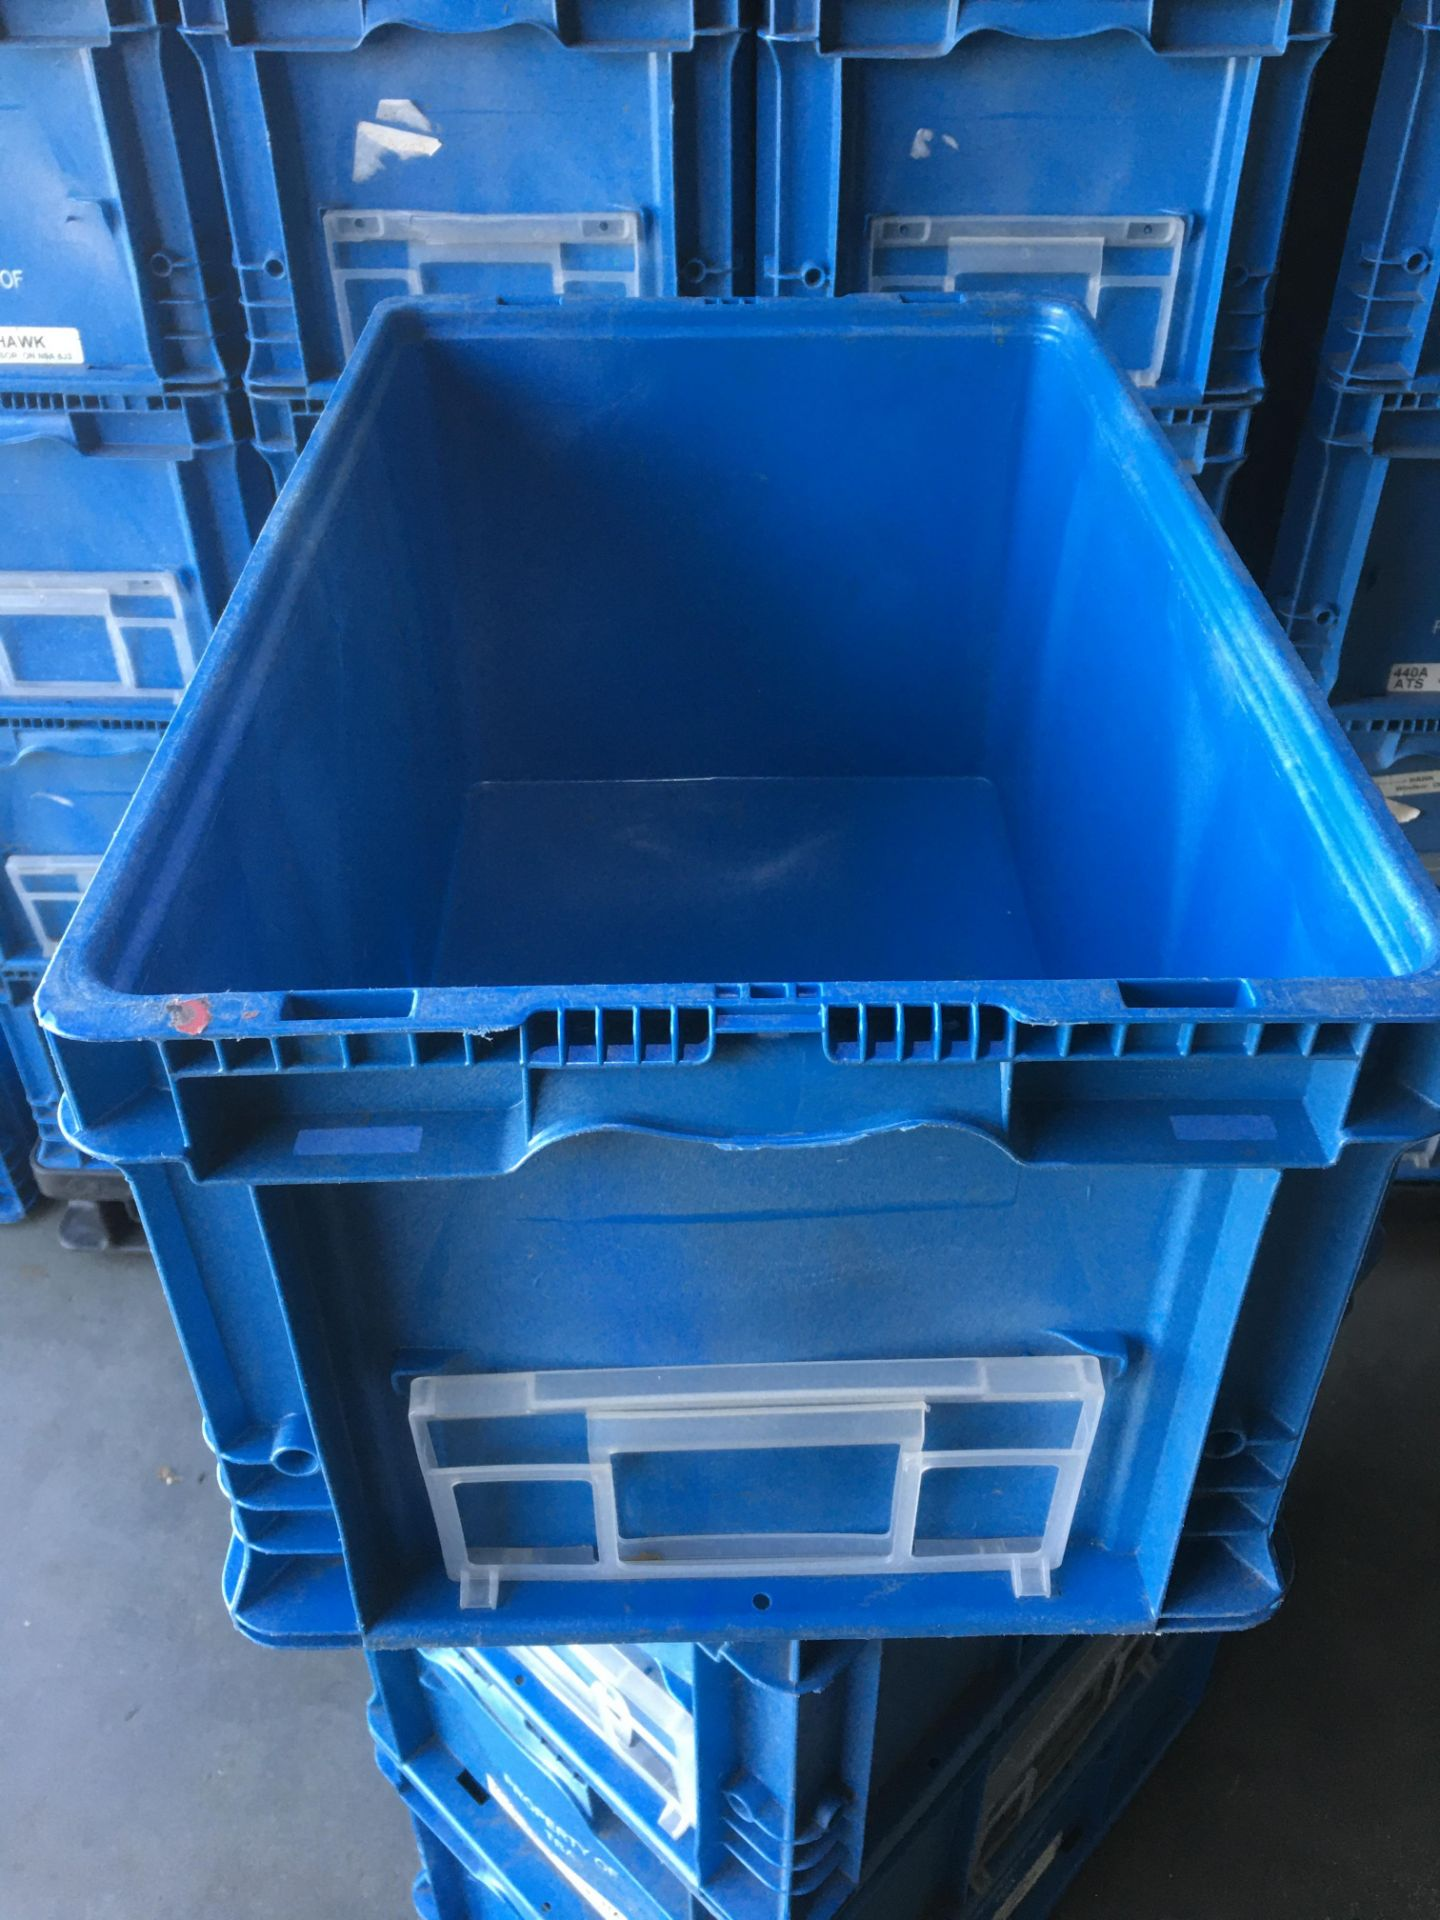 Orbis Plastic Straight Wall Container - Image 4 of 6